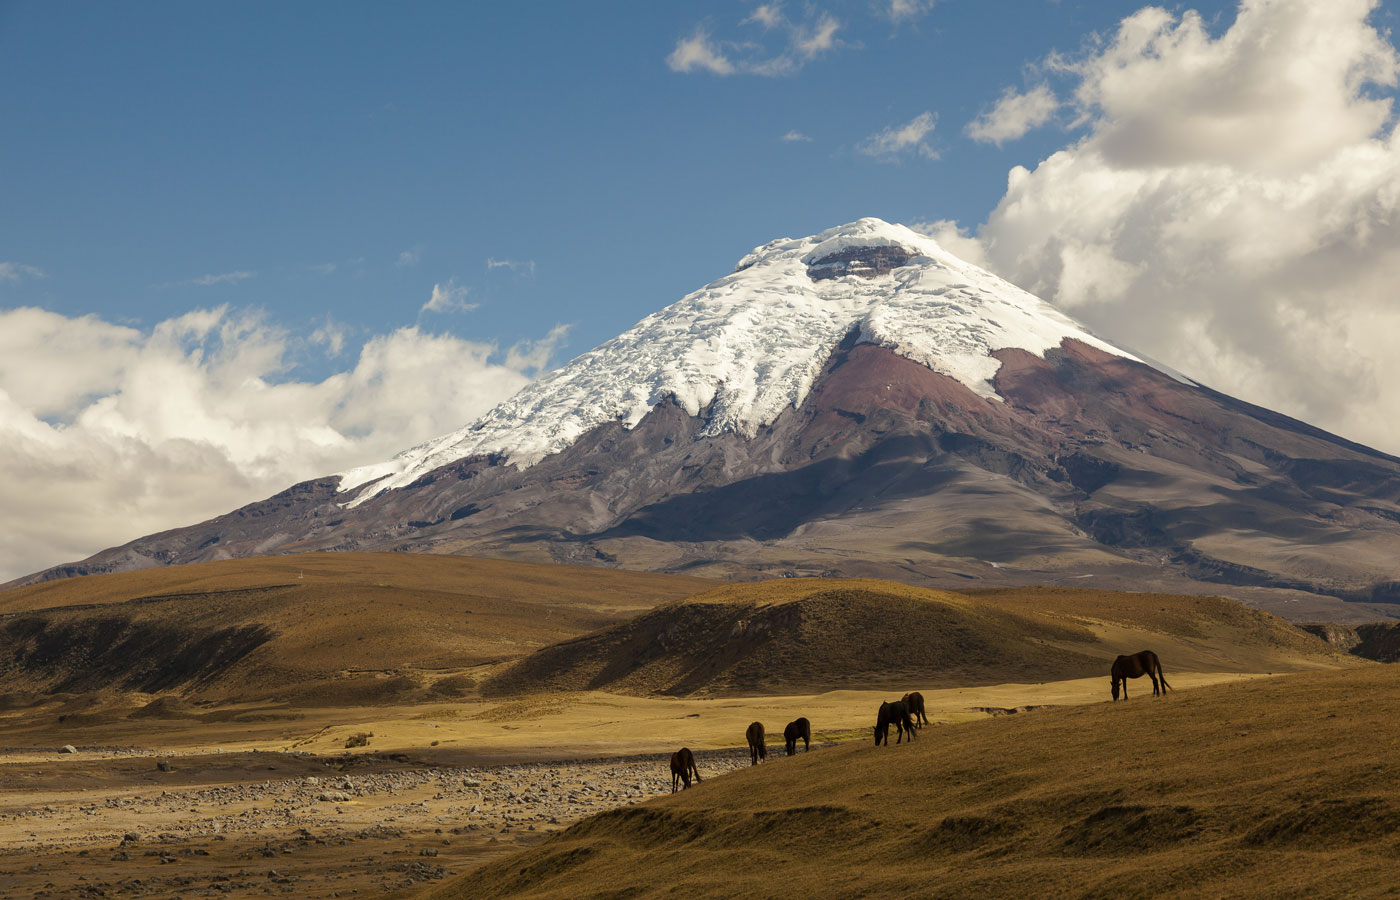 The volcano Cotopaxi in Ecuador